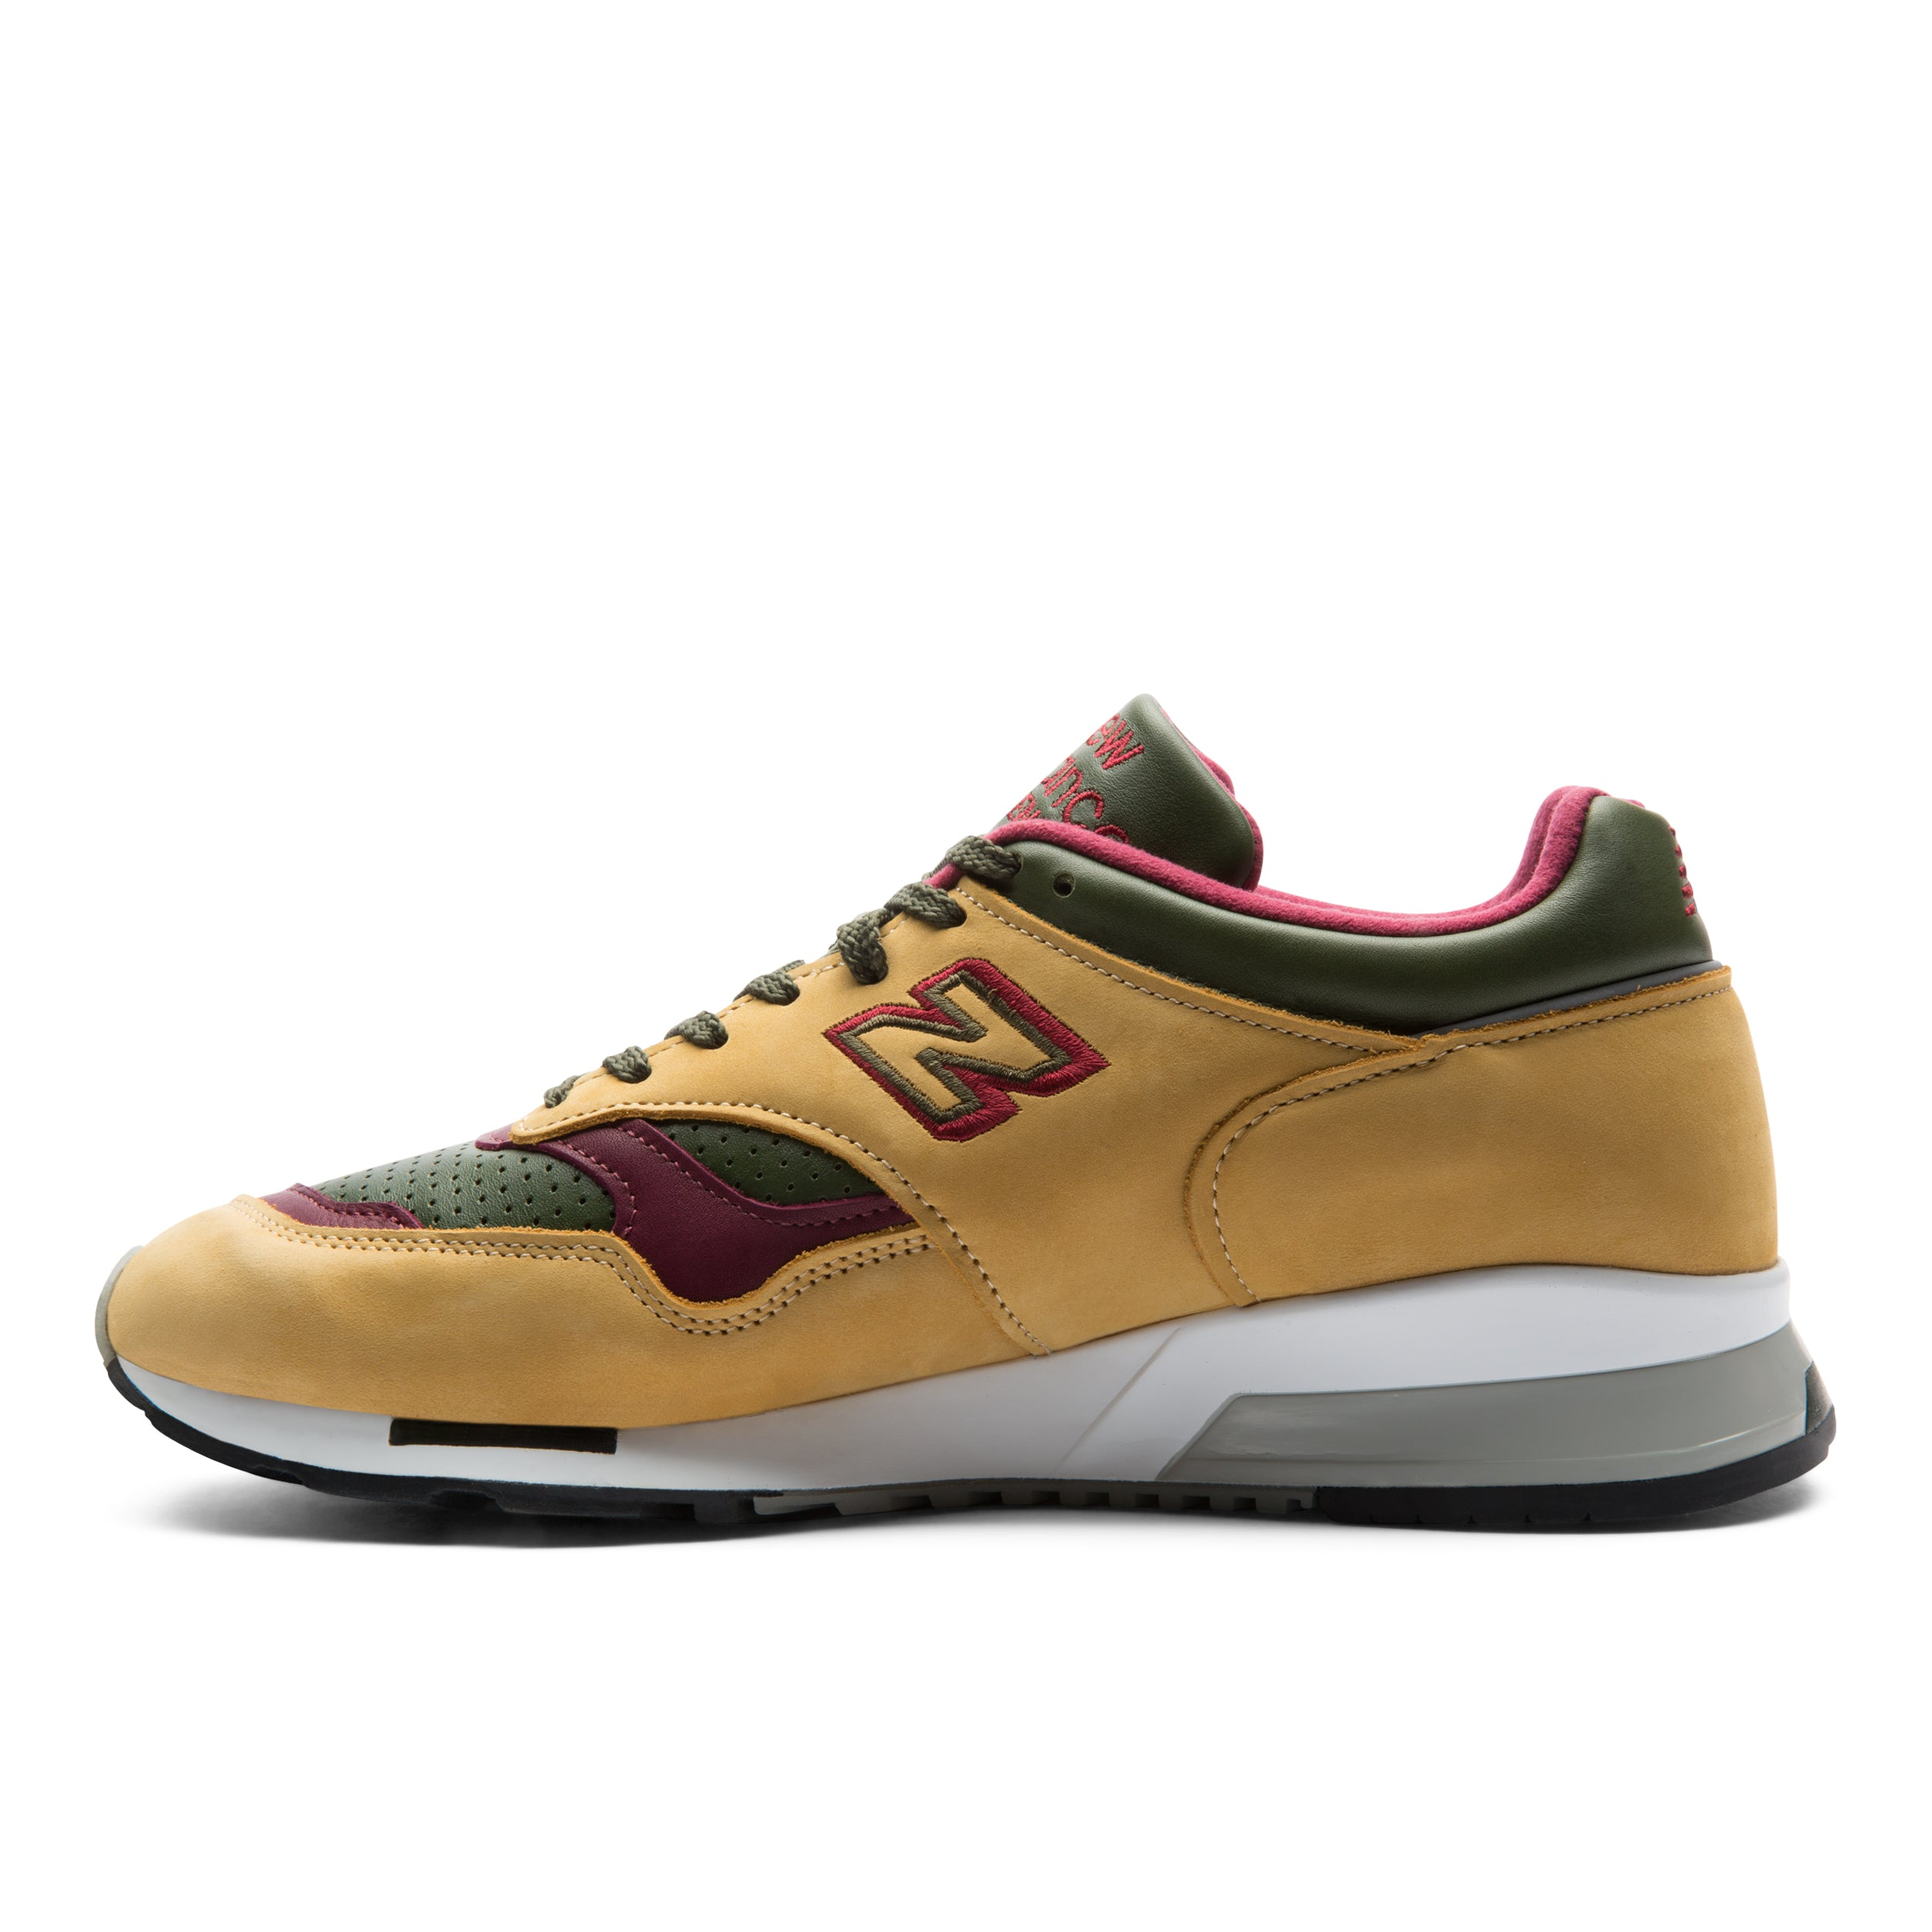 check out 5537f 42c61 NEW BALANCE 1500 MADE IN UK - Yellow / Red / Green – Atmos ...